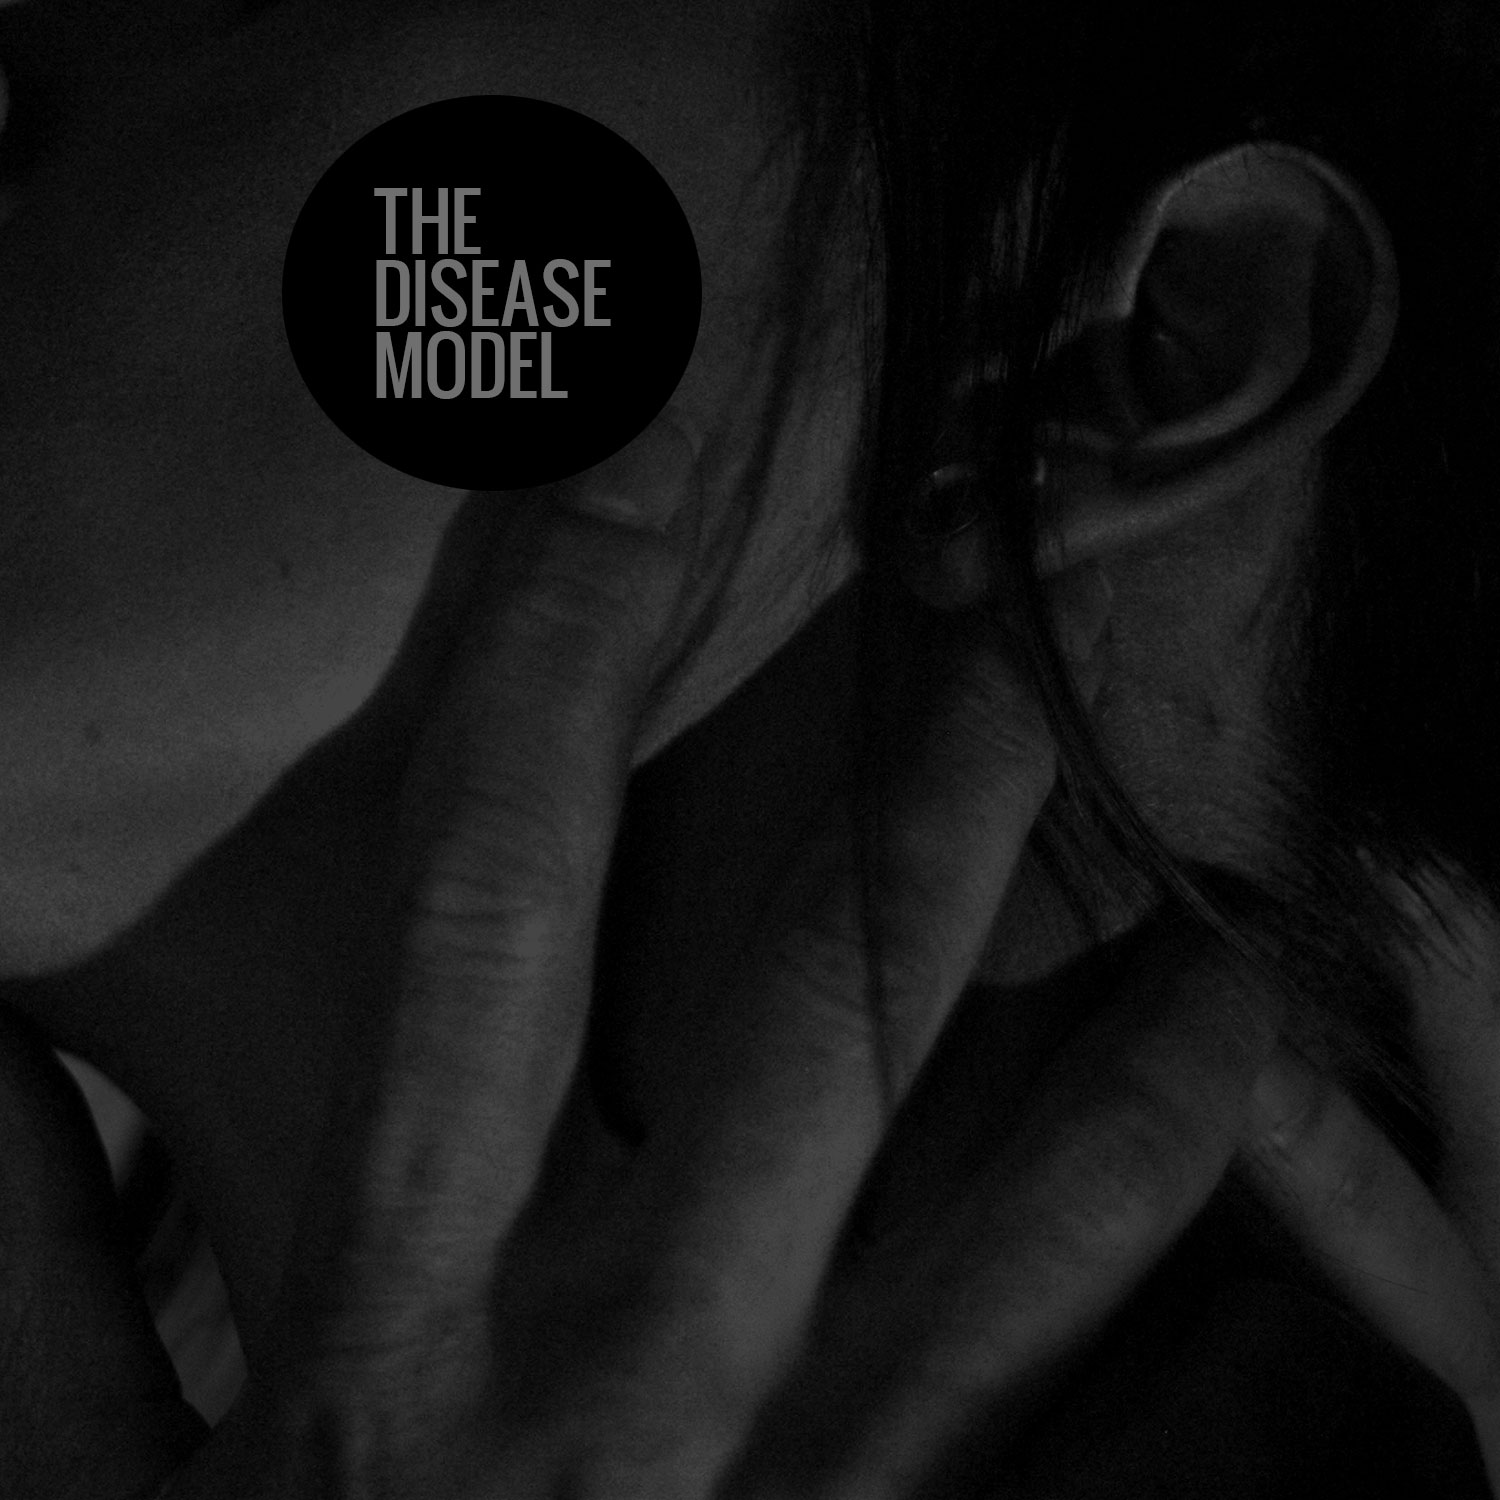 The Disease Model - Photo and Design by Daniel Tuttle